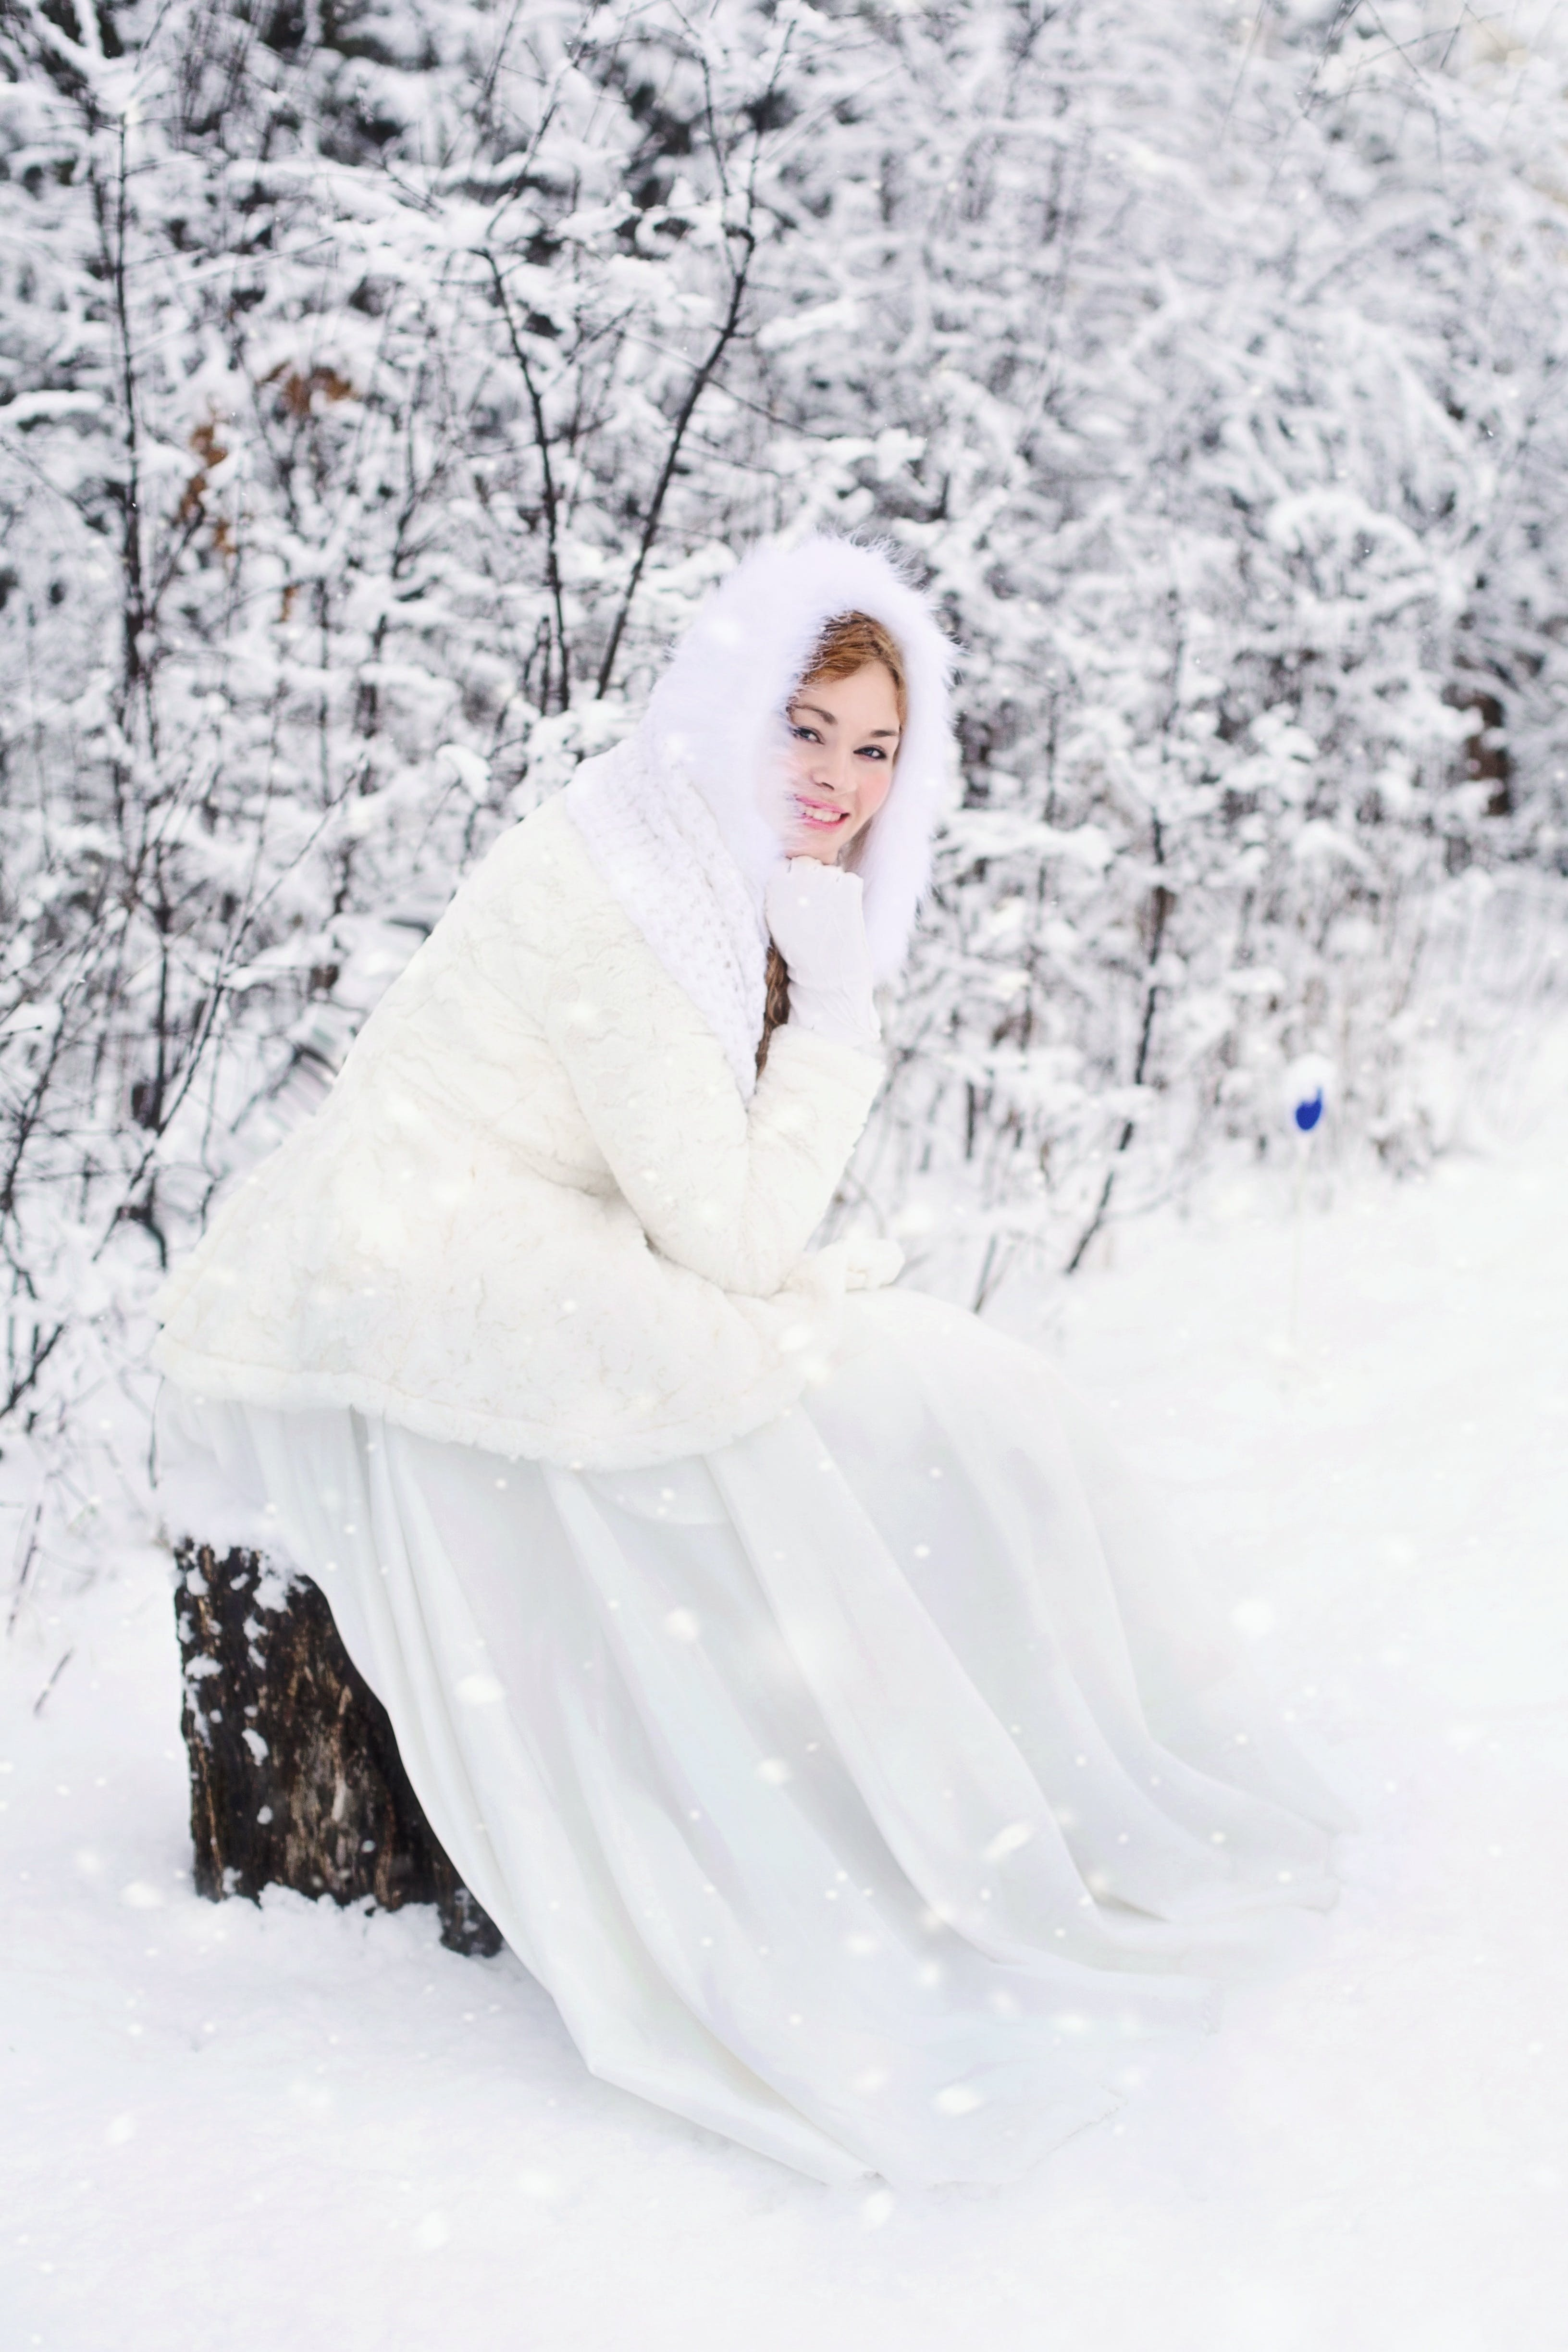 Woman in White Fur Hooded Dress in White Snow Filed